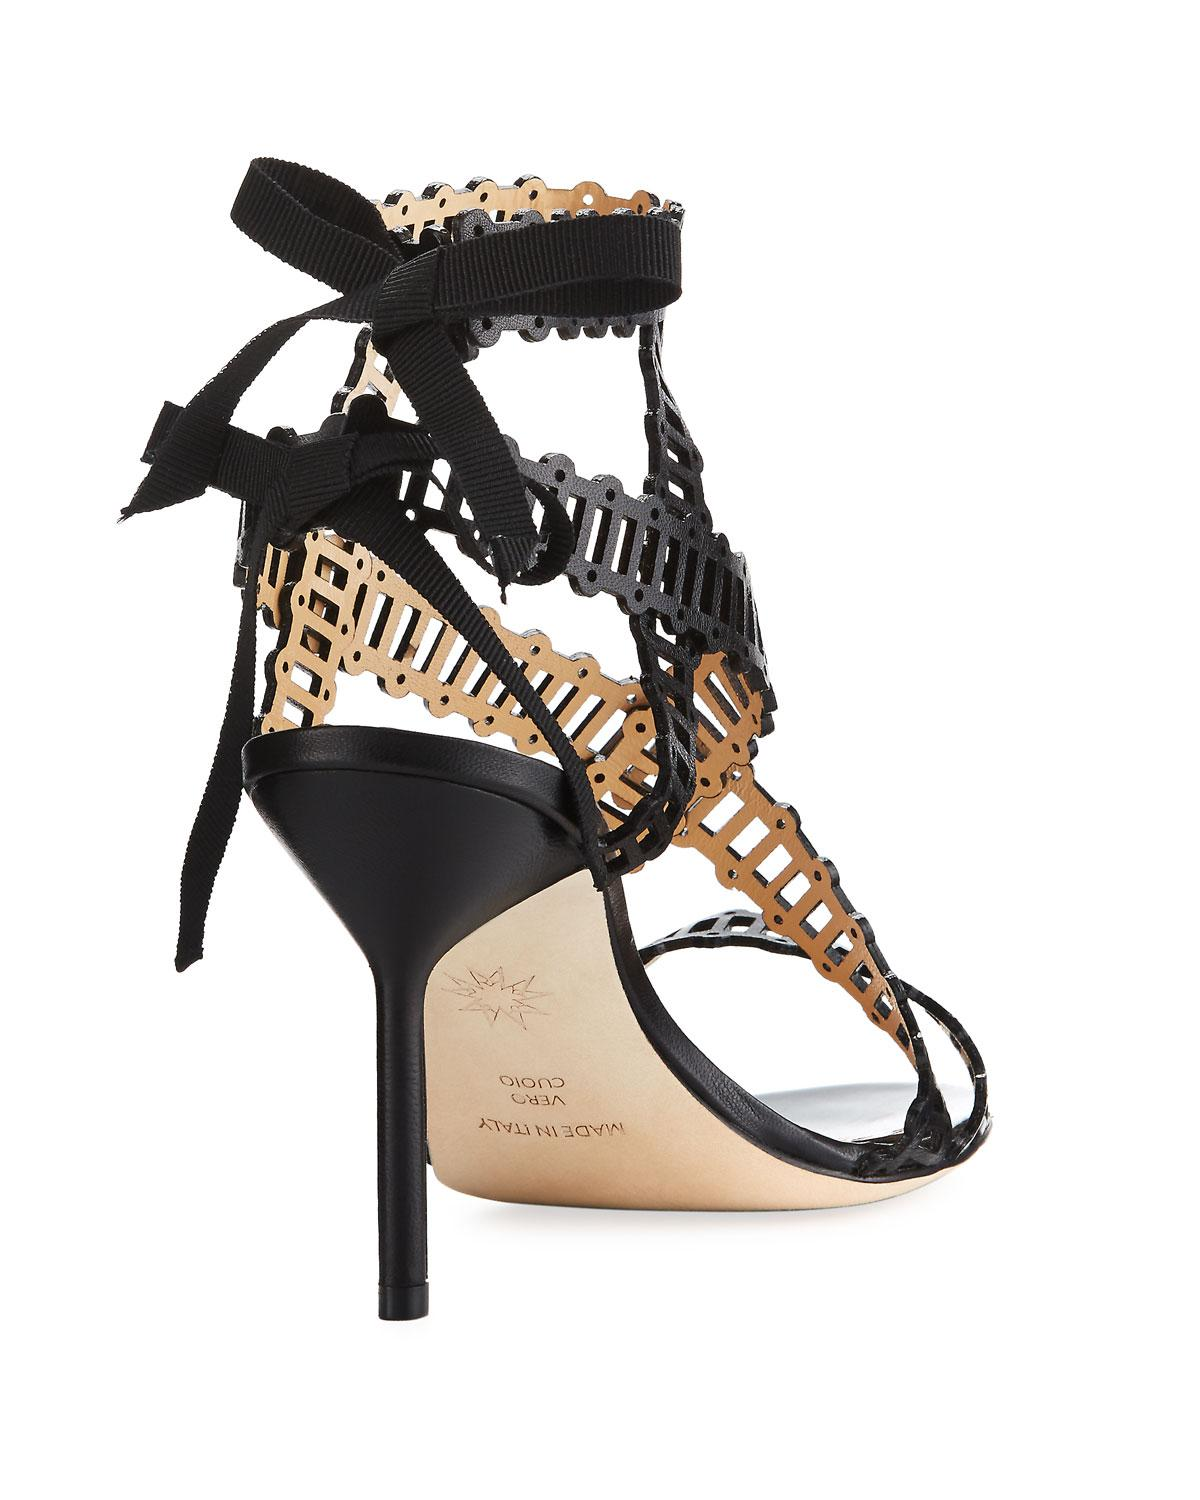 439d9e6d2f Lyst - Marchesa Sarah Leather Sandal in Black